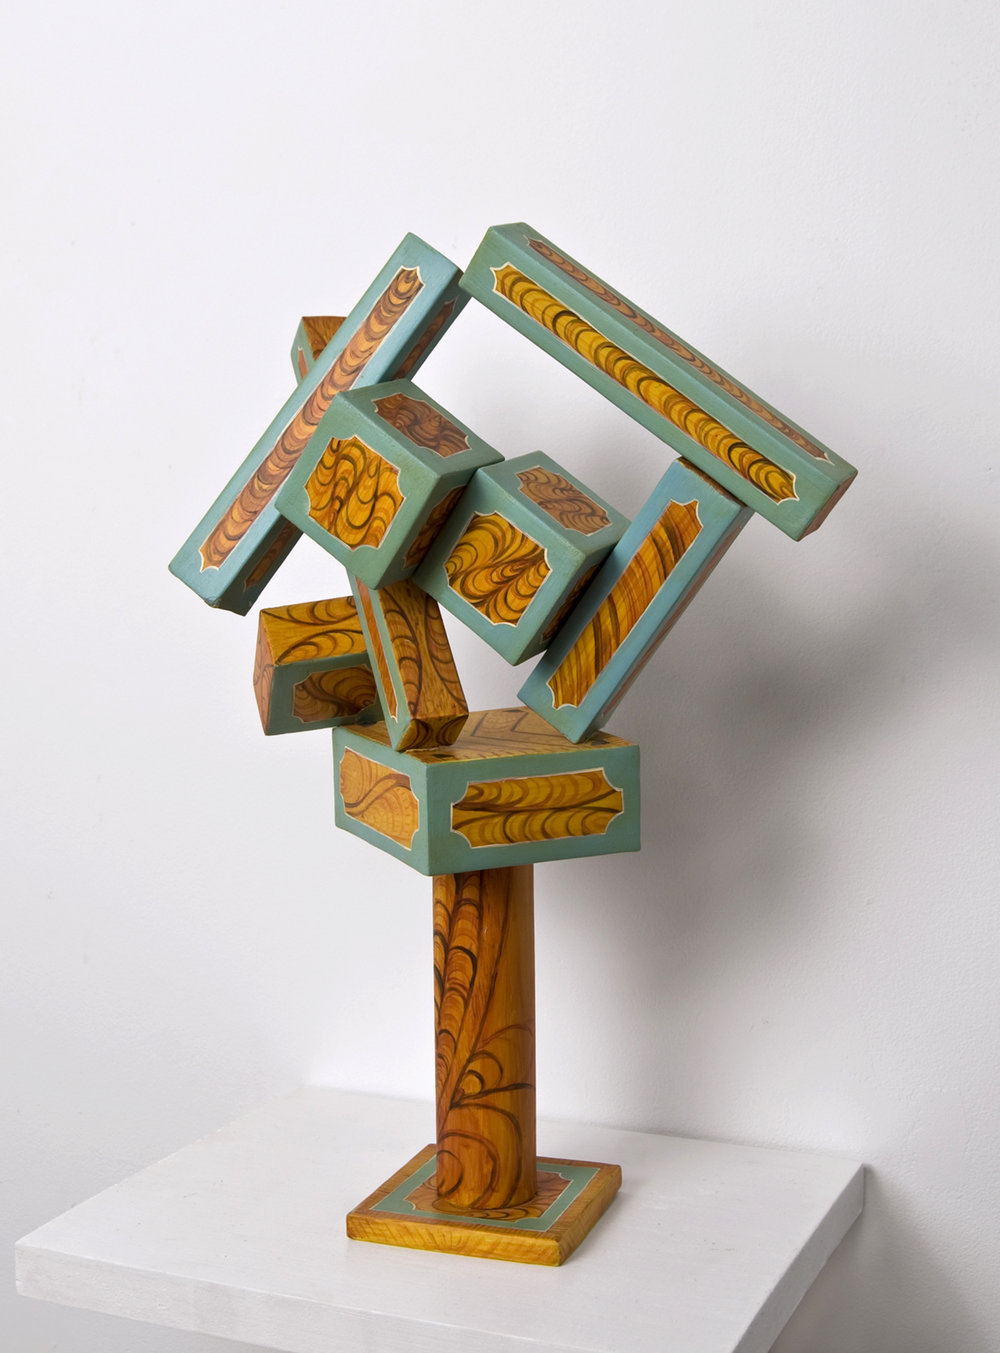 Panter (Cubi XVII) , 2011, paper, acrylic, wooden armature, 14 x 9 1/2 x 5 inches